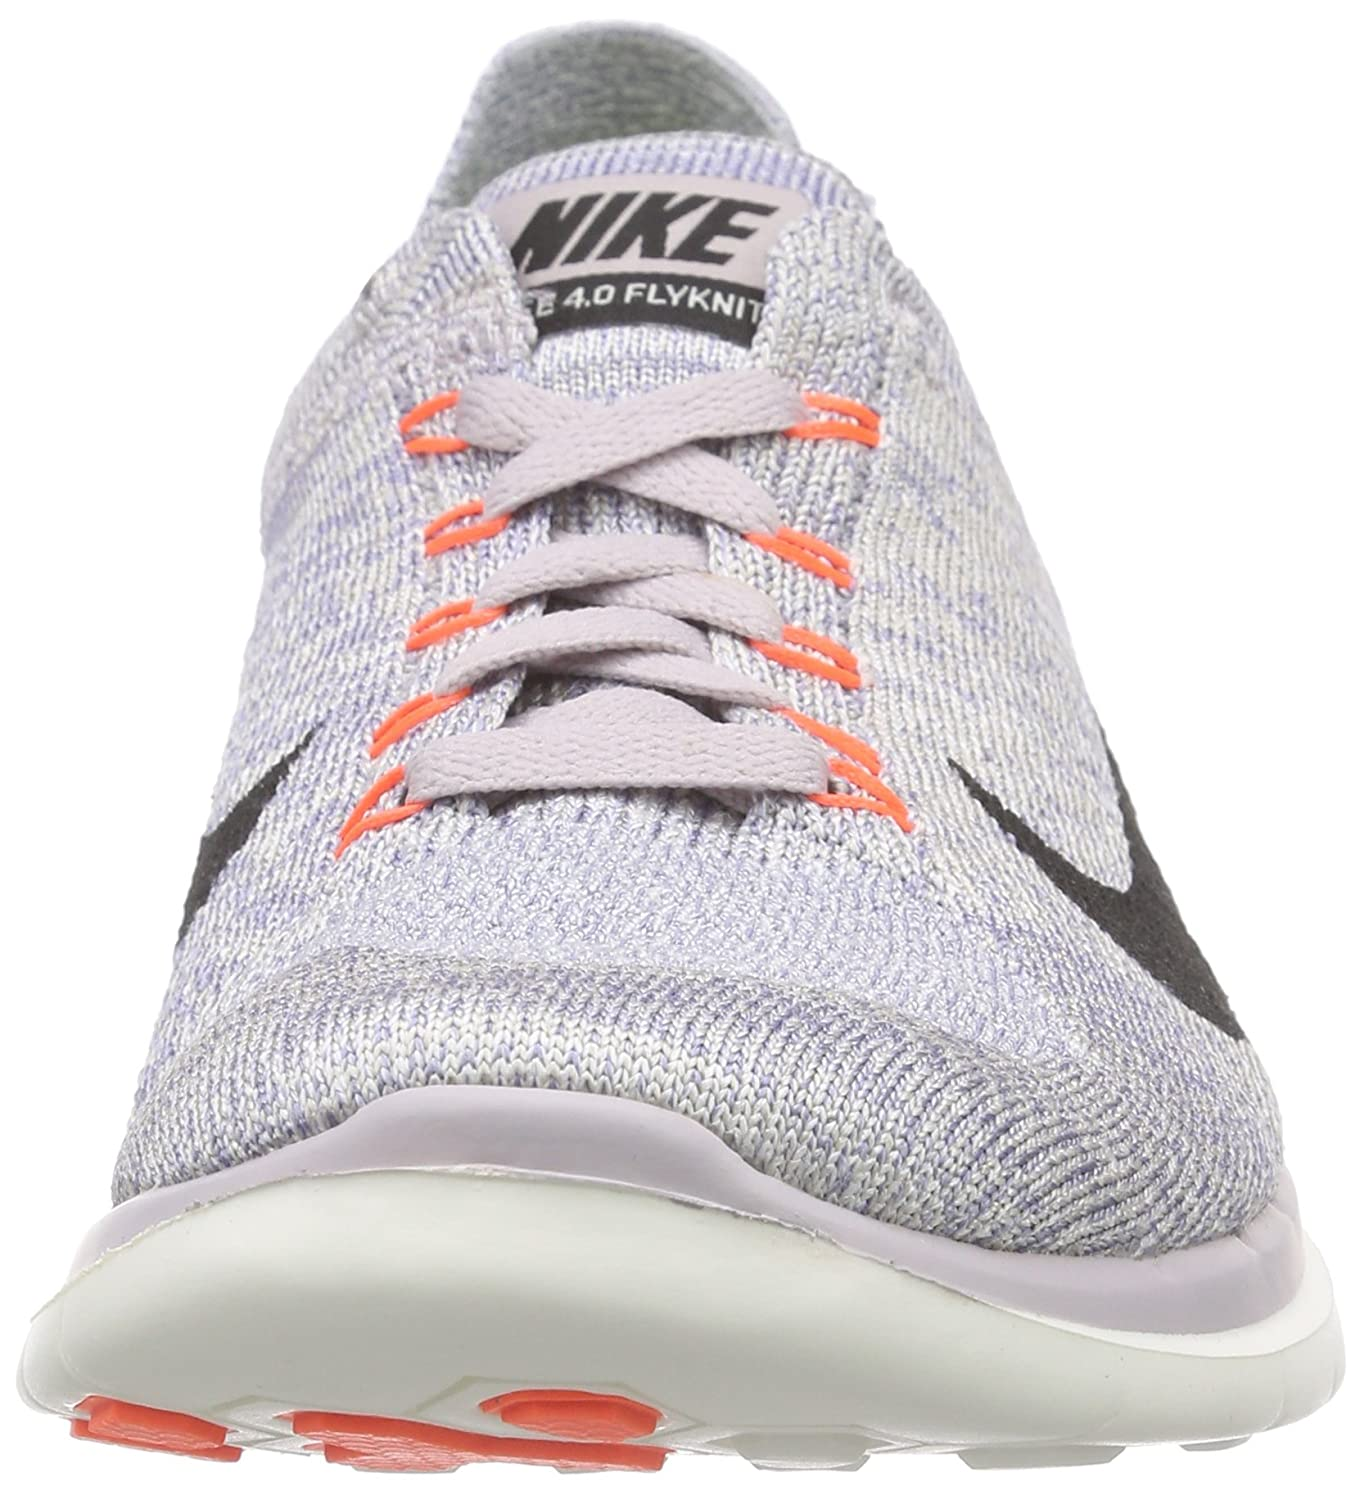 f13d5ee44079b Nike Women s Free 4.0 Flyknit Running Shoes Purple Size  3 UK  Amazon.co.uk   Shoes   Bags